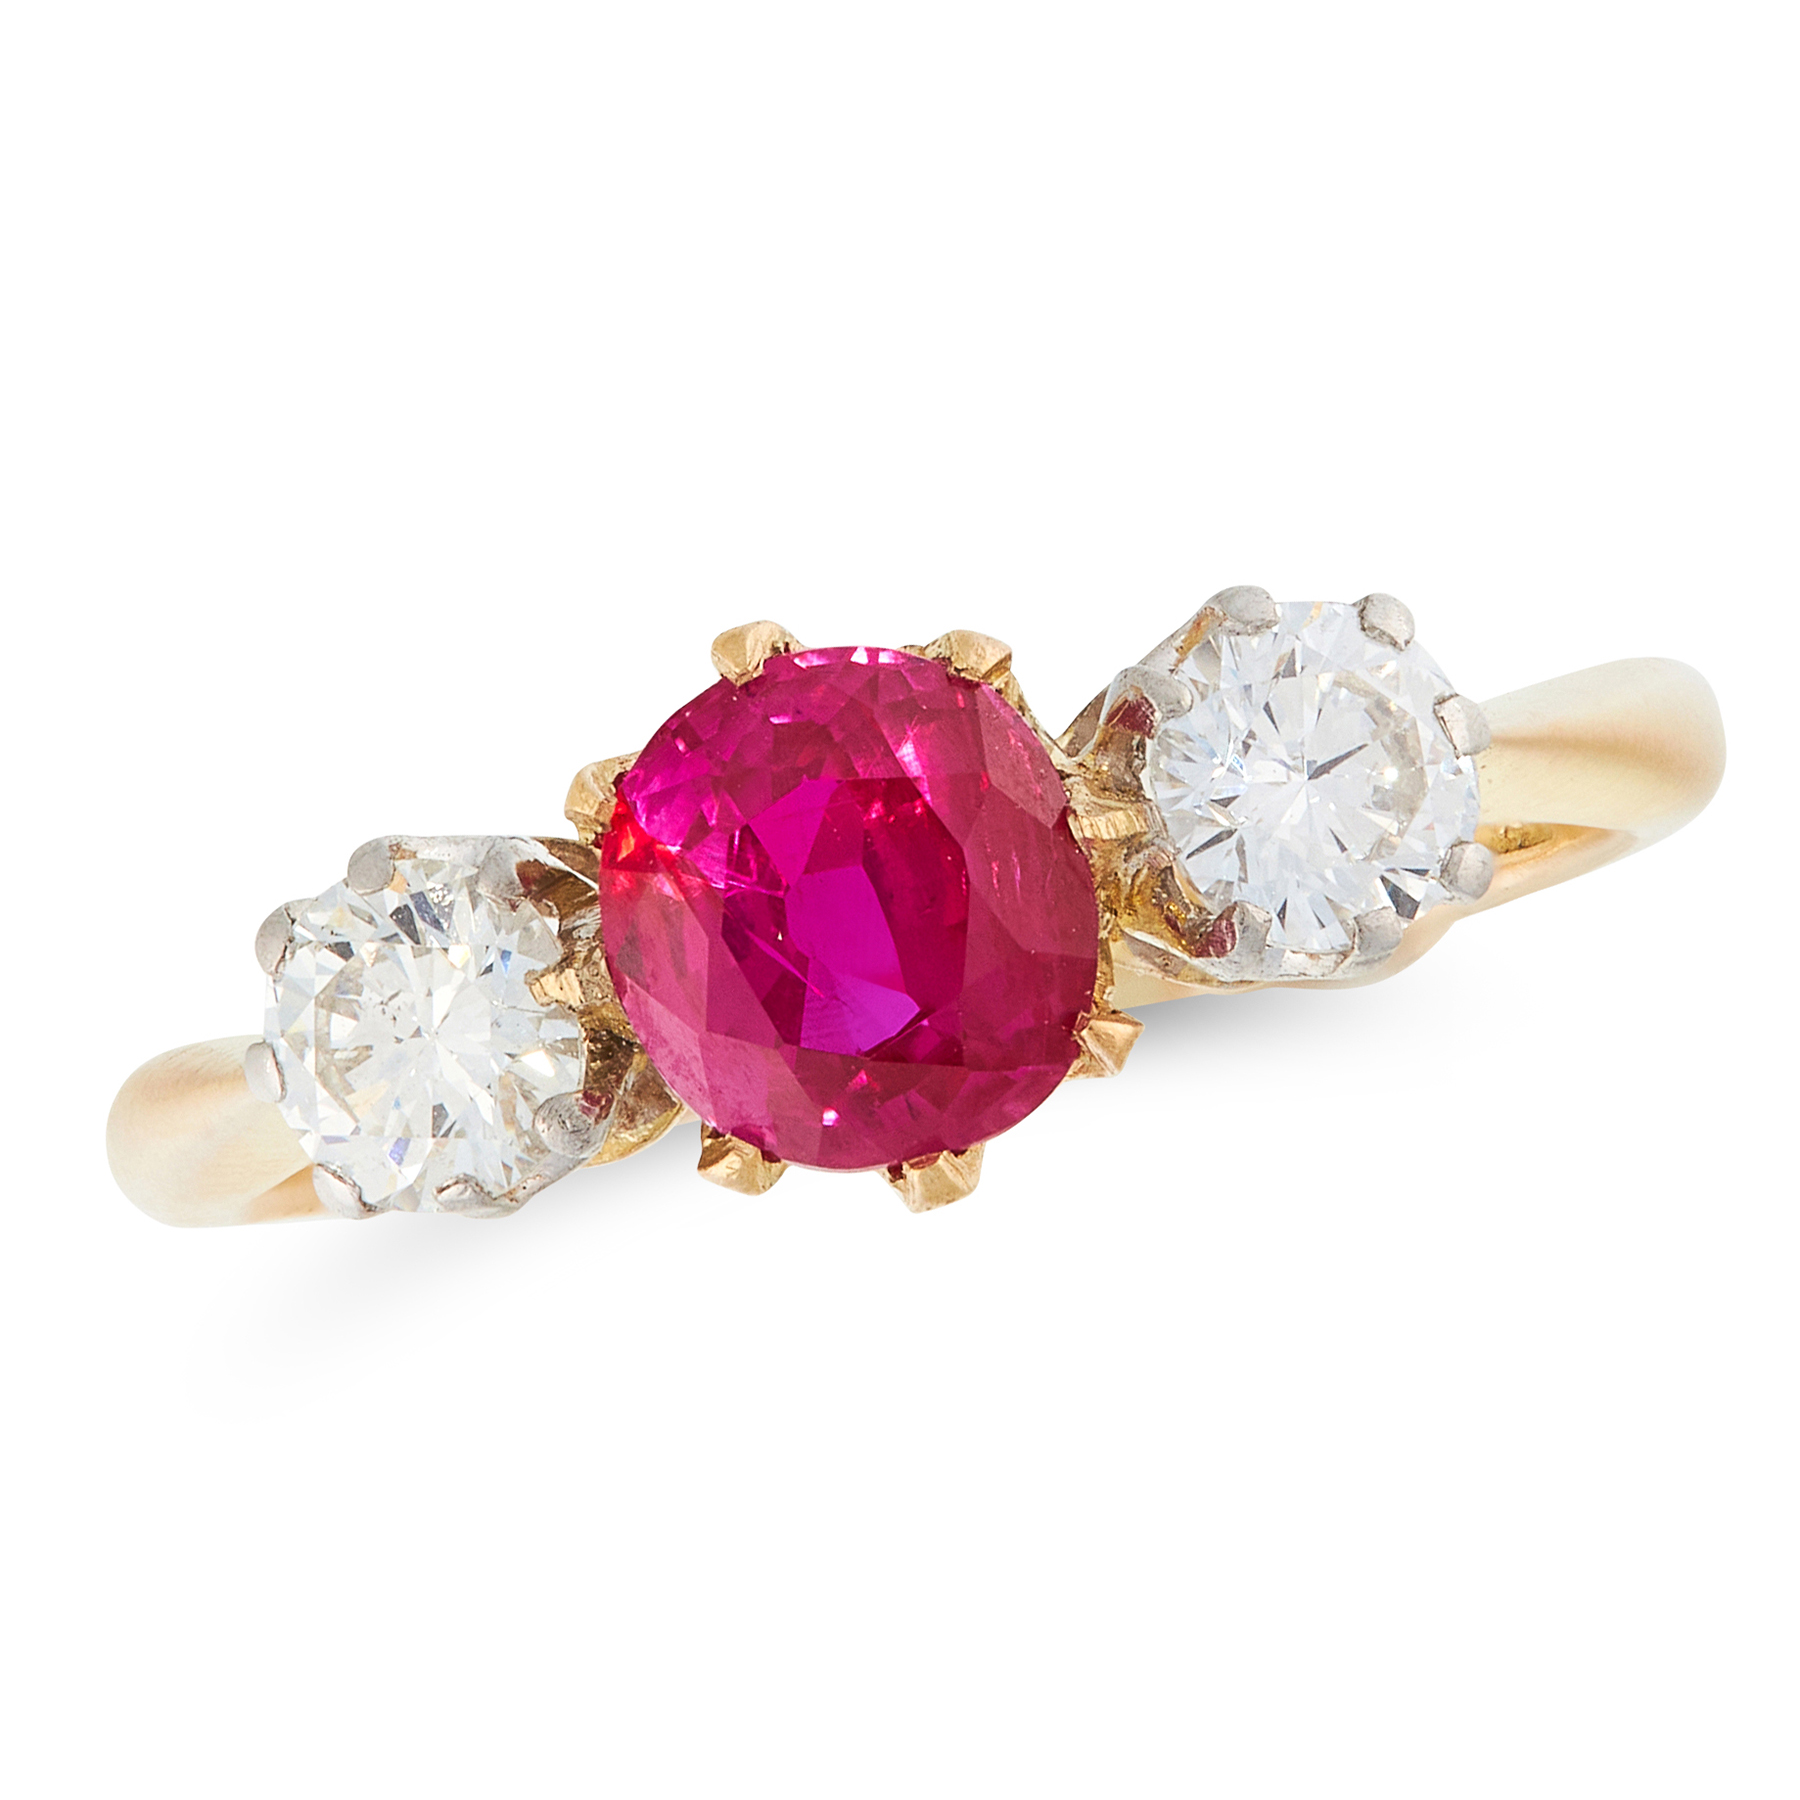 A RUBY AND DIAMOND THREE STONE RING in 18ct yellow gold, set with a round cut ruby of 0.70 carats